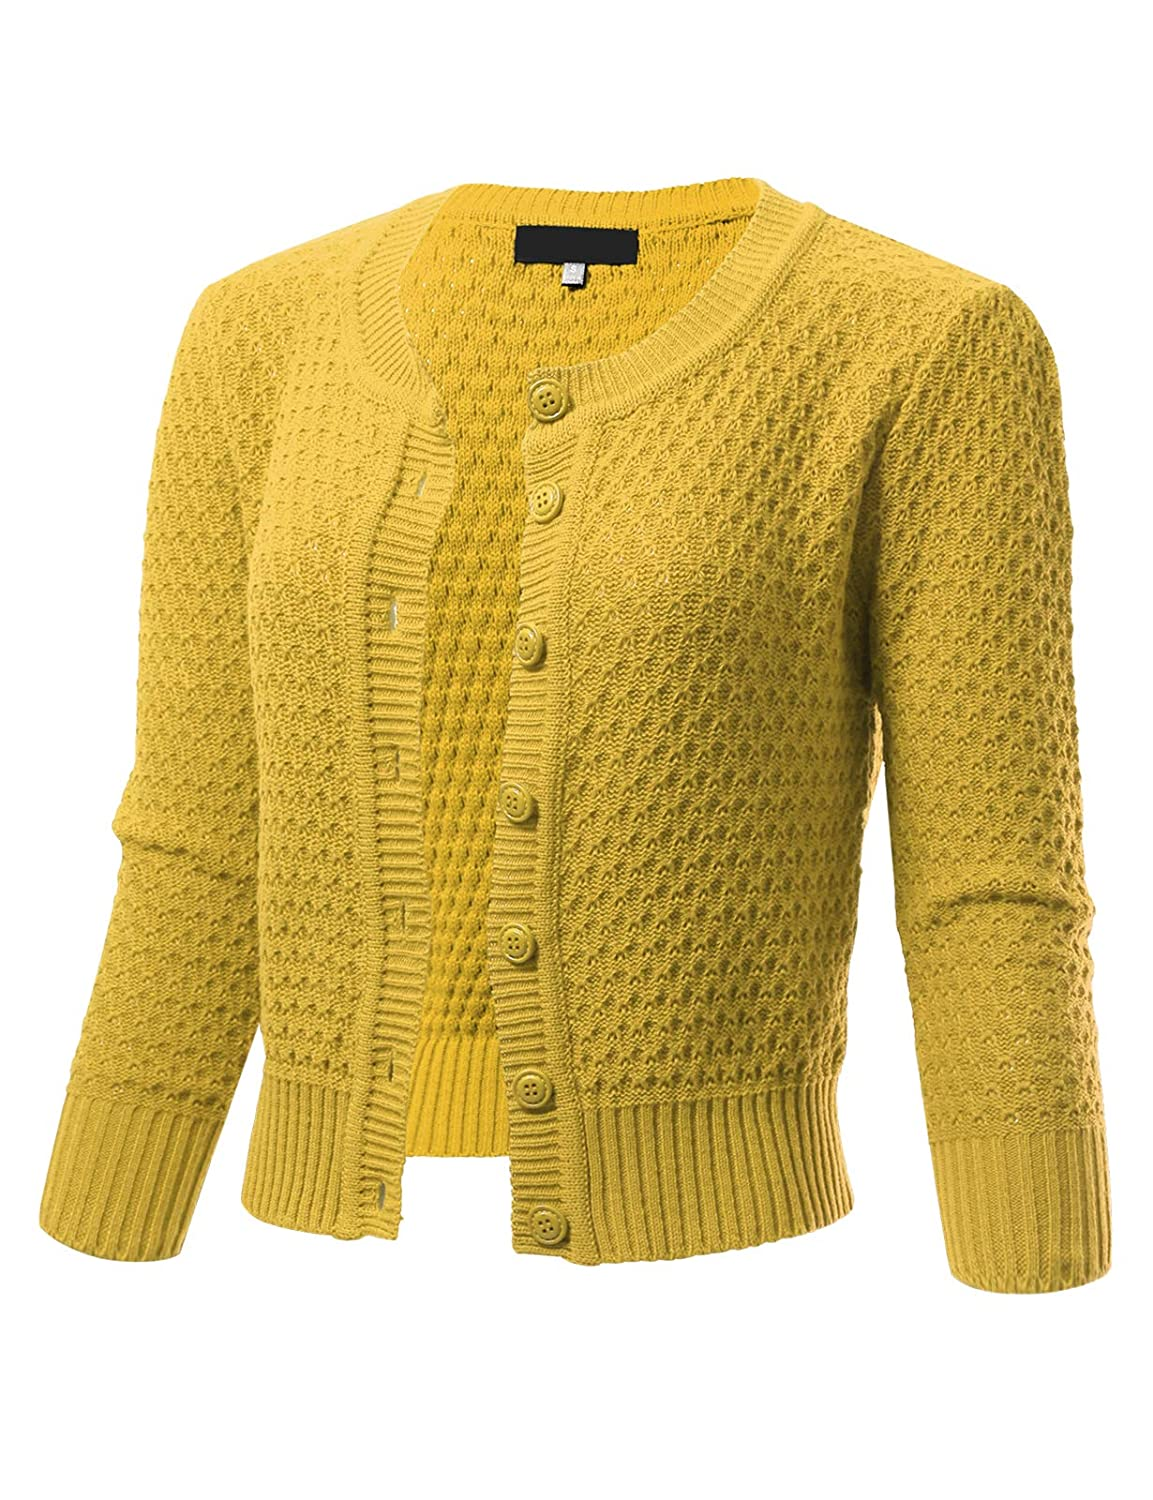 Honey ARC Studio Womens Button Down 3 4 Sleeve Cropped Knit Cardigan Crochet Sweater (SXL)